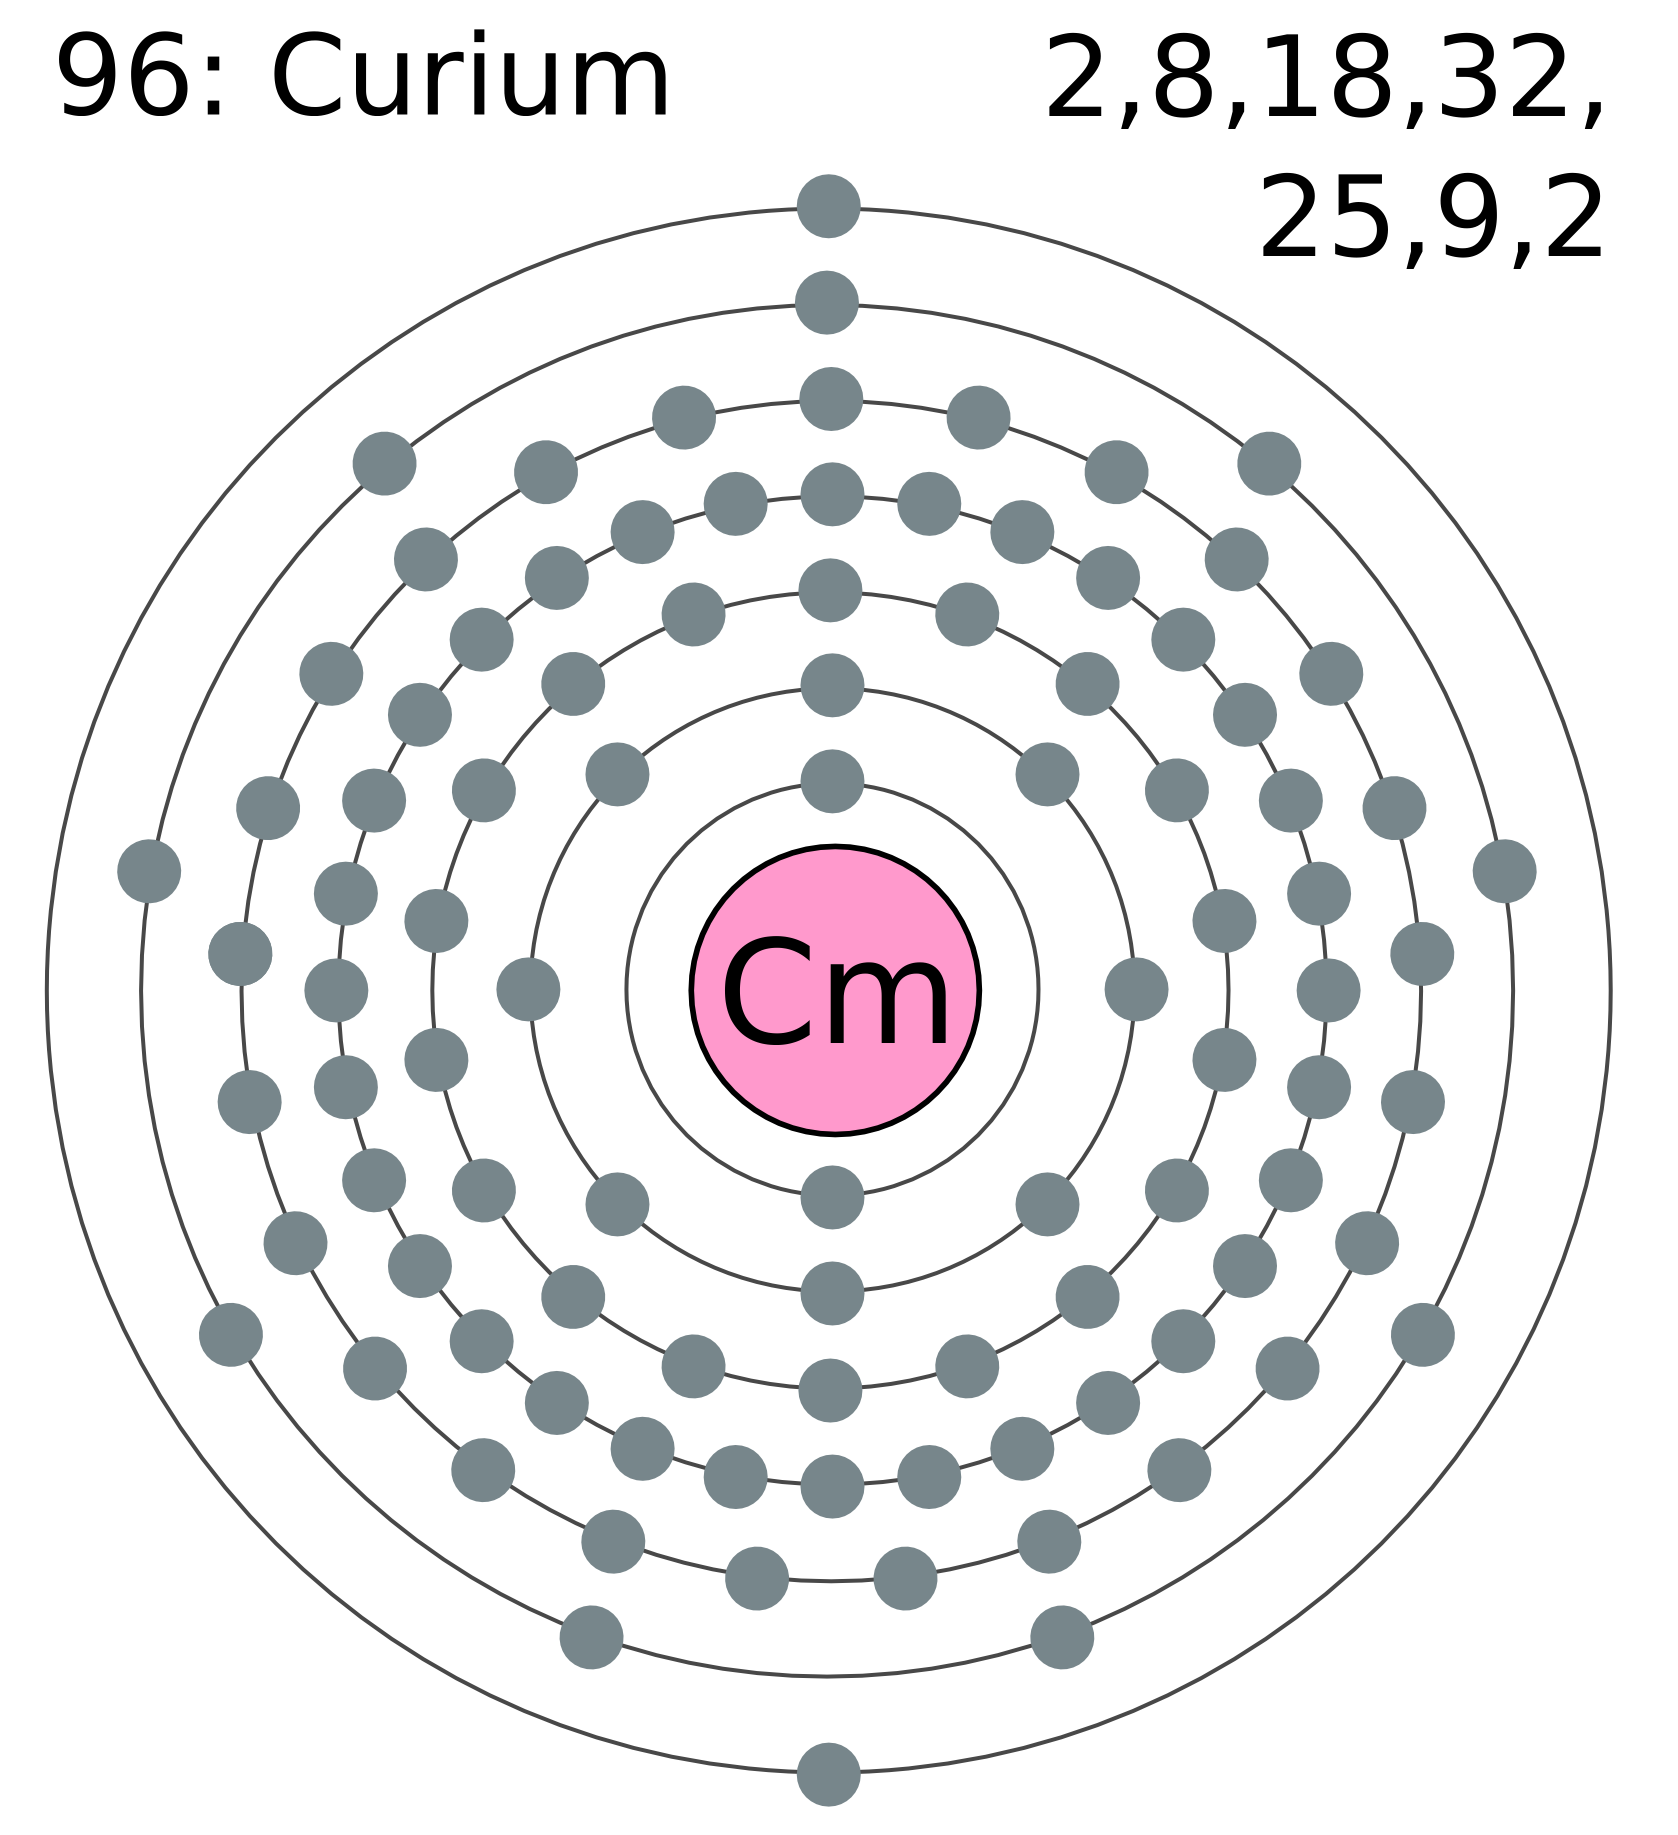 small resolution of man made element curium possible rough draft idea for tattoo